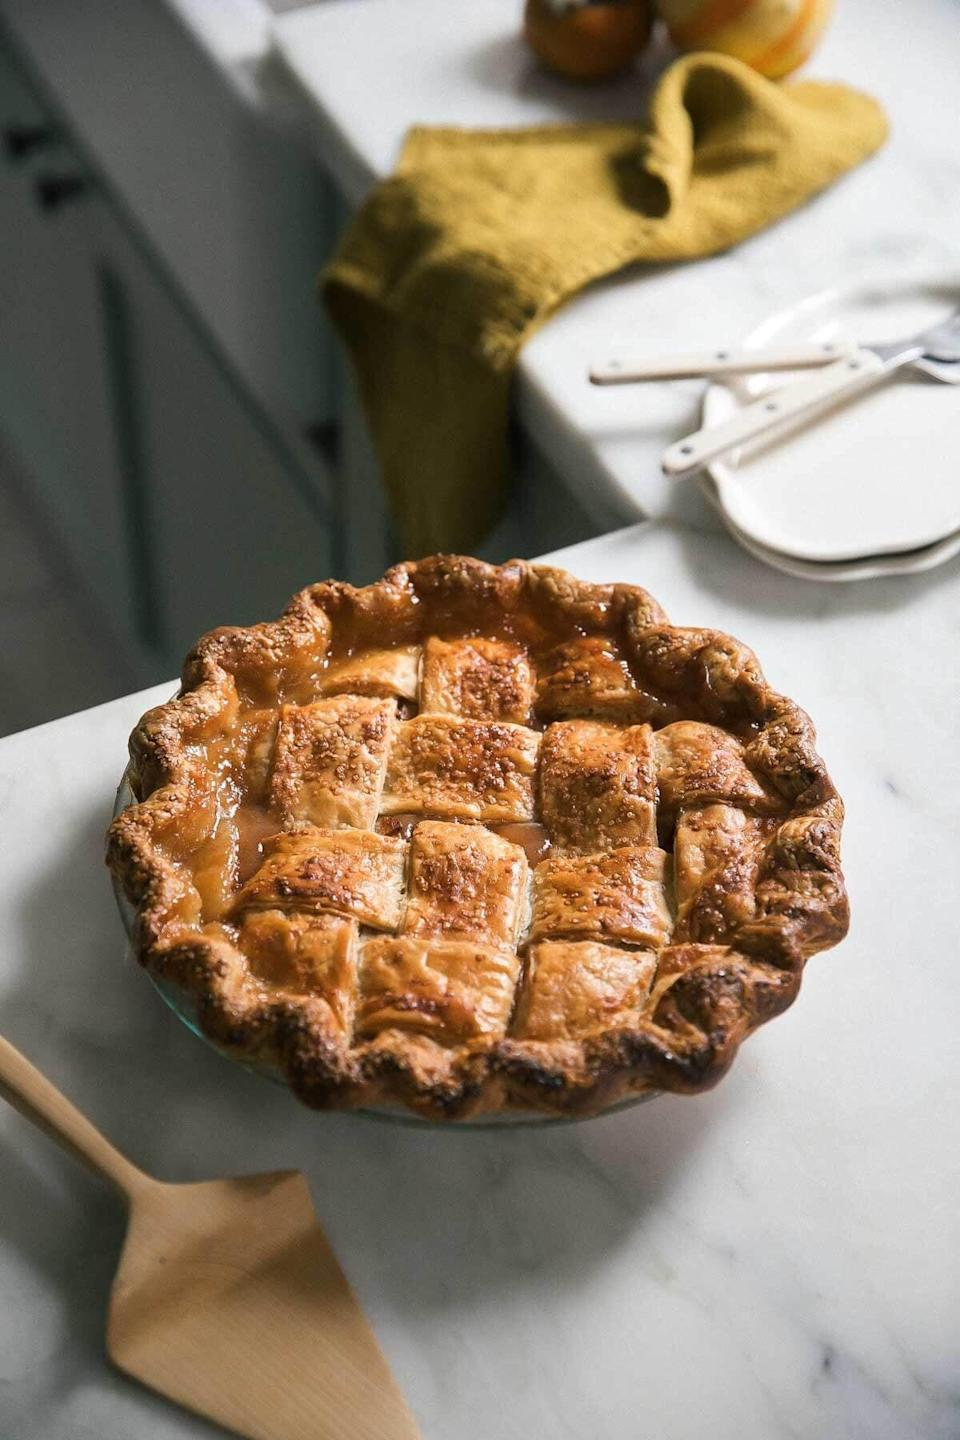 "<p>If you're looking for the perfect traditional apple-pie recipe, you've come to the right place. This mouthwatering recipe is easy, classic, and almost too good to be true. Honey crisp and Braeburn apples are combined with sugar and spices to make this flavorful pie a treat for everyone's taste buds.</p> <p><strong>Get the recipe</strong>: <a href=""https://www.acozykitchen.com/a-classic-apple-pie"" class=""link rapid-noclick-resp"" rel=""nofollow noopener"" target=""_blank"" data-ylk=""slk:classic apple pie"">classic apple pie</a></p>"